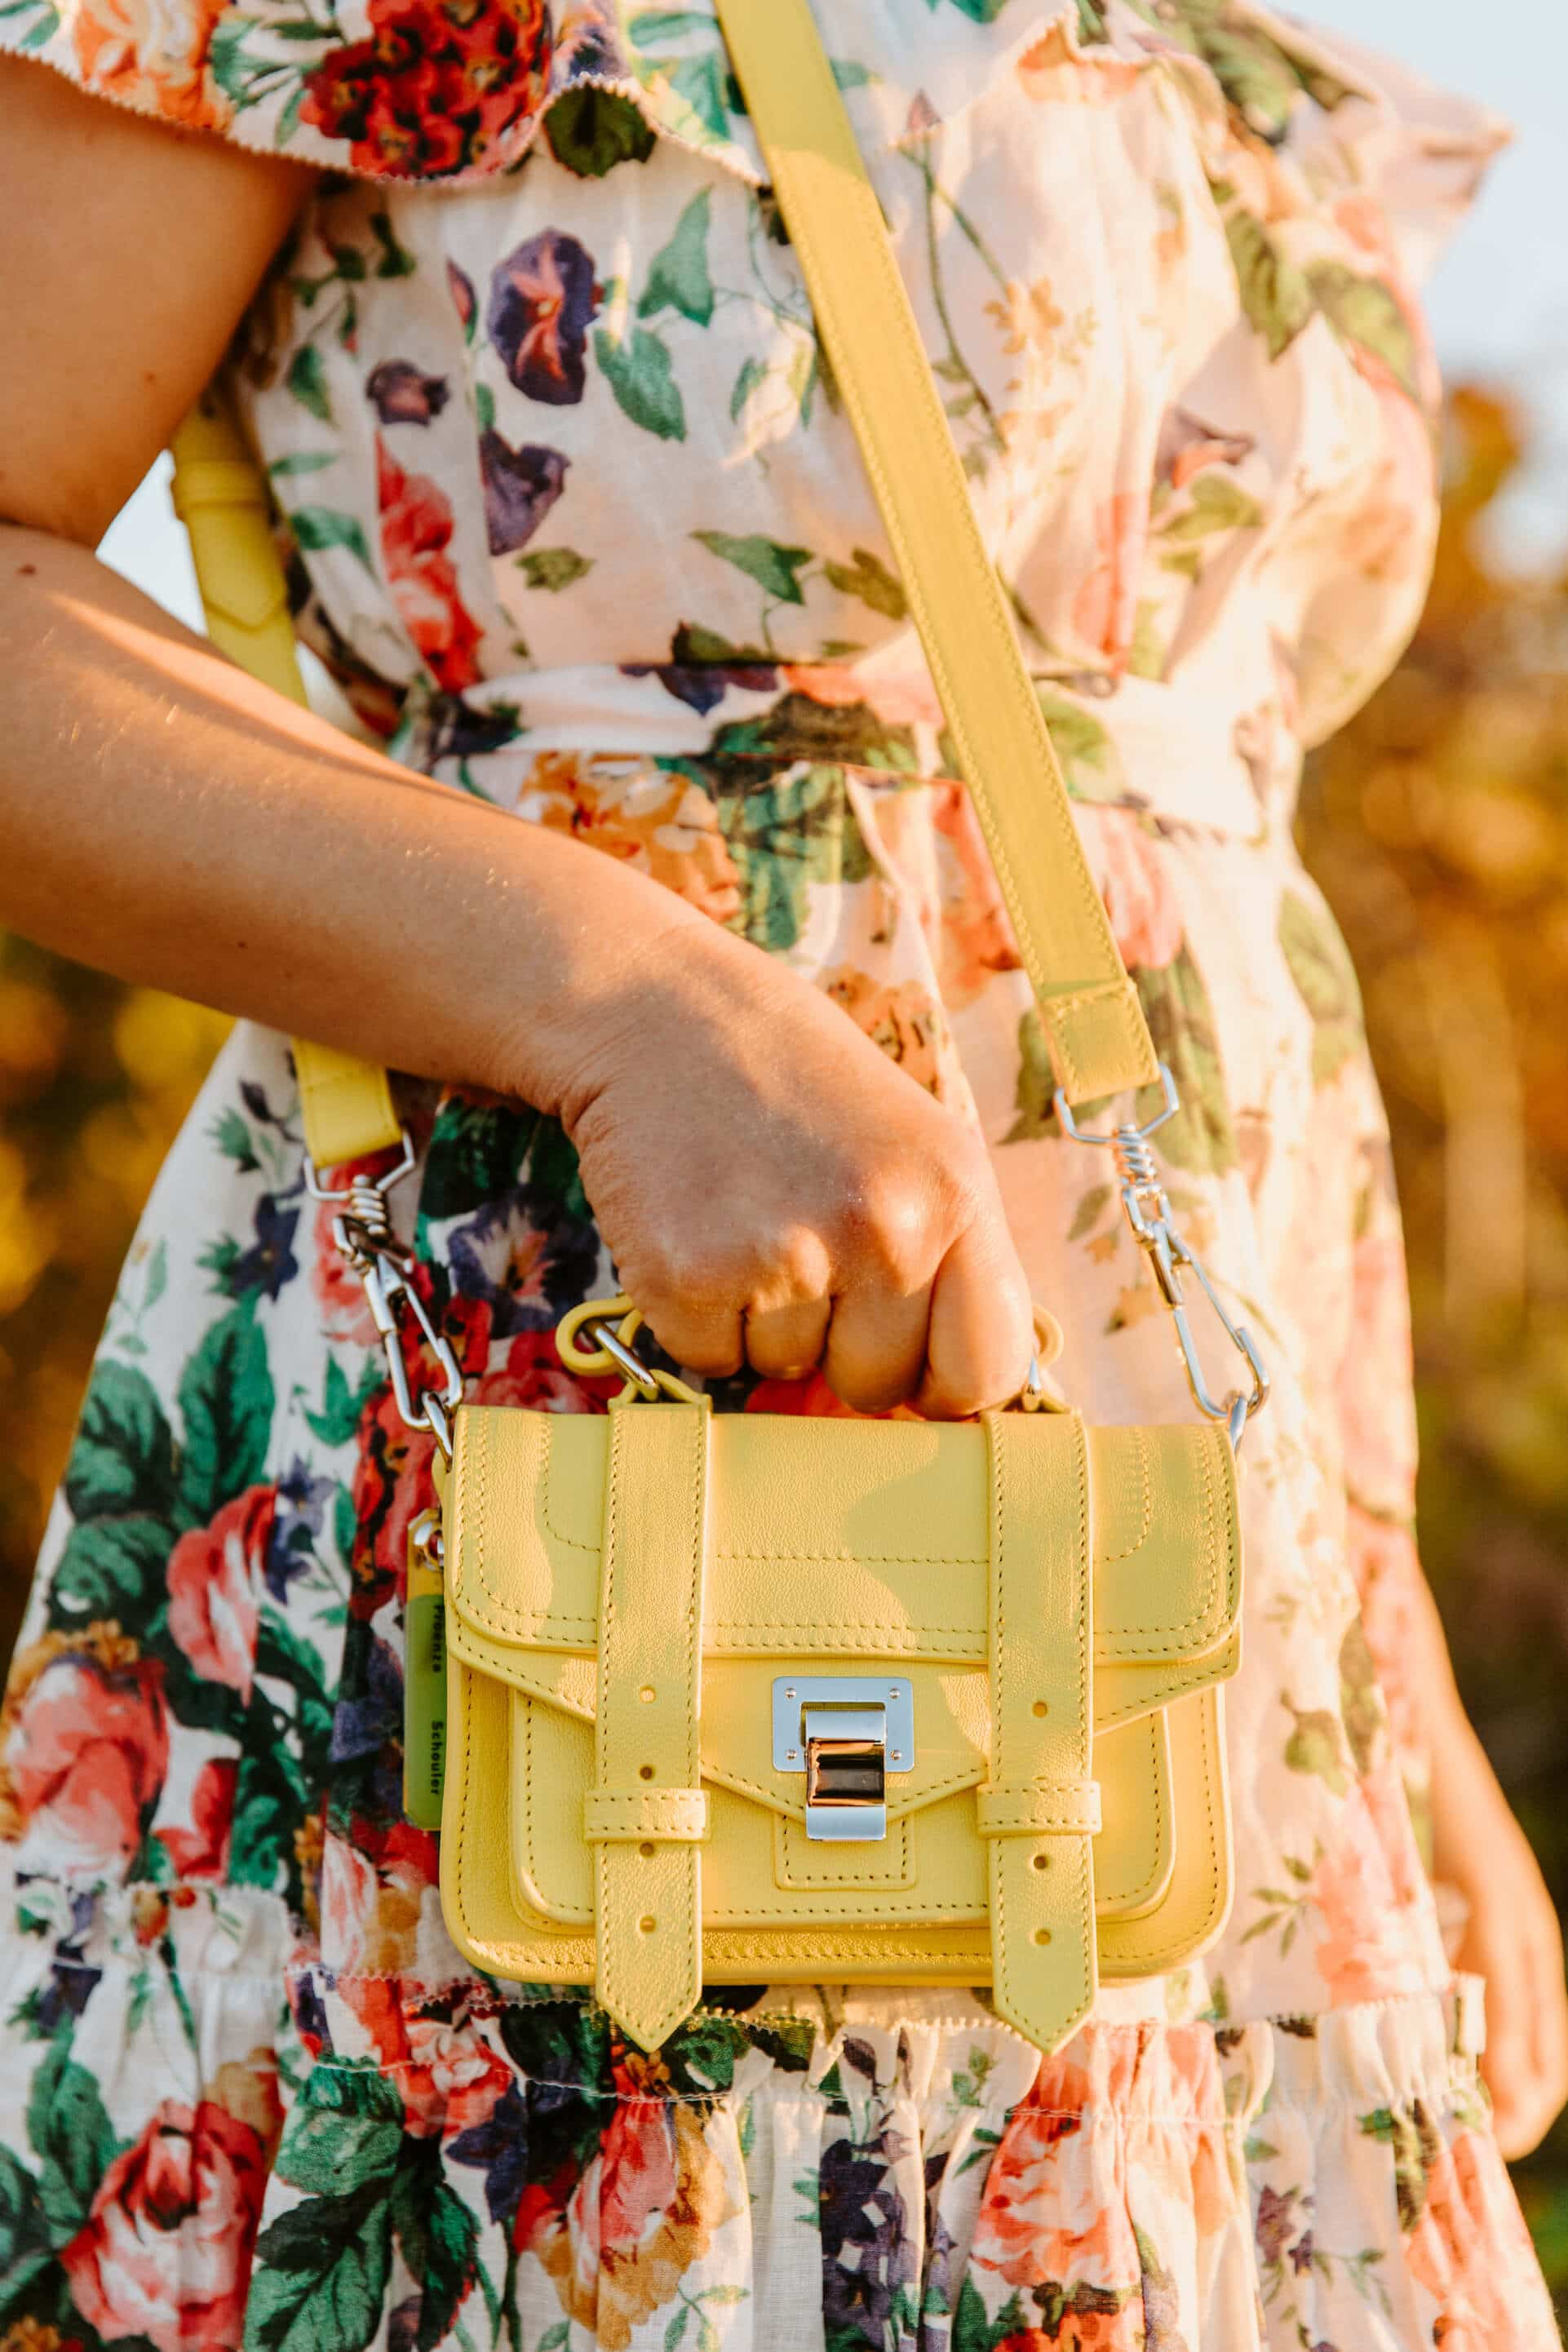 Micro Bags for Spring by Modnitsa Styling